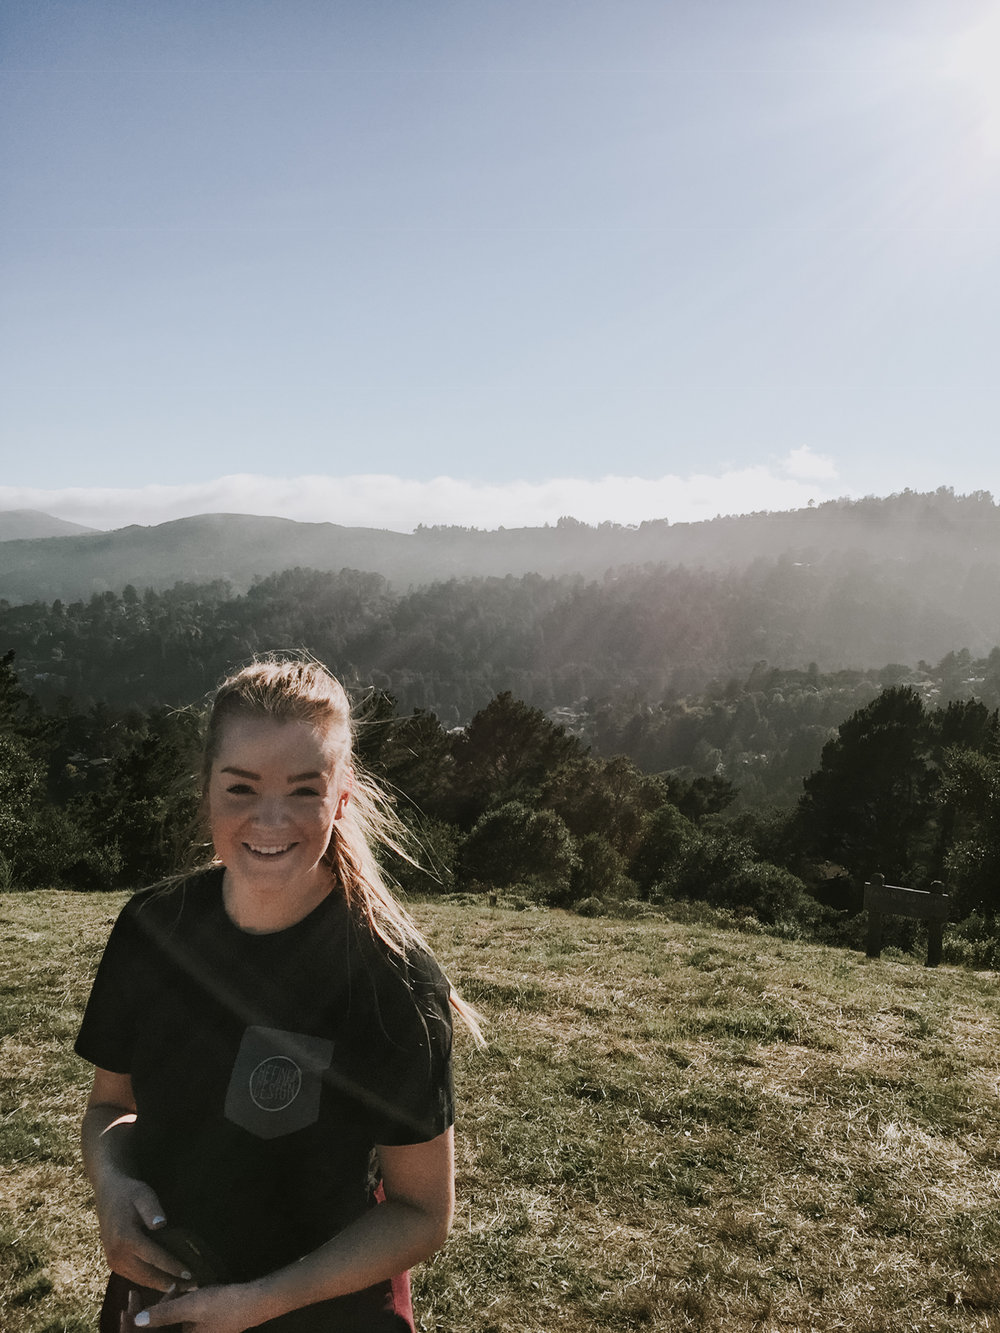 our trip to San Francisco - hiking in the mountains of Mill Valley